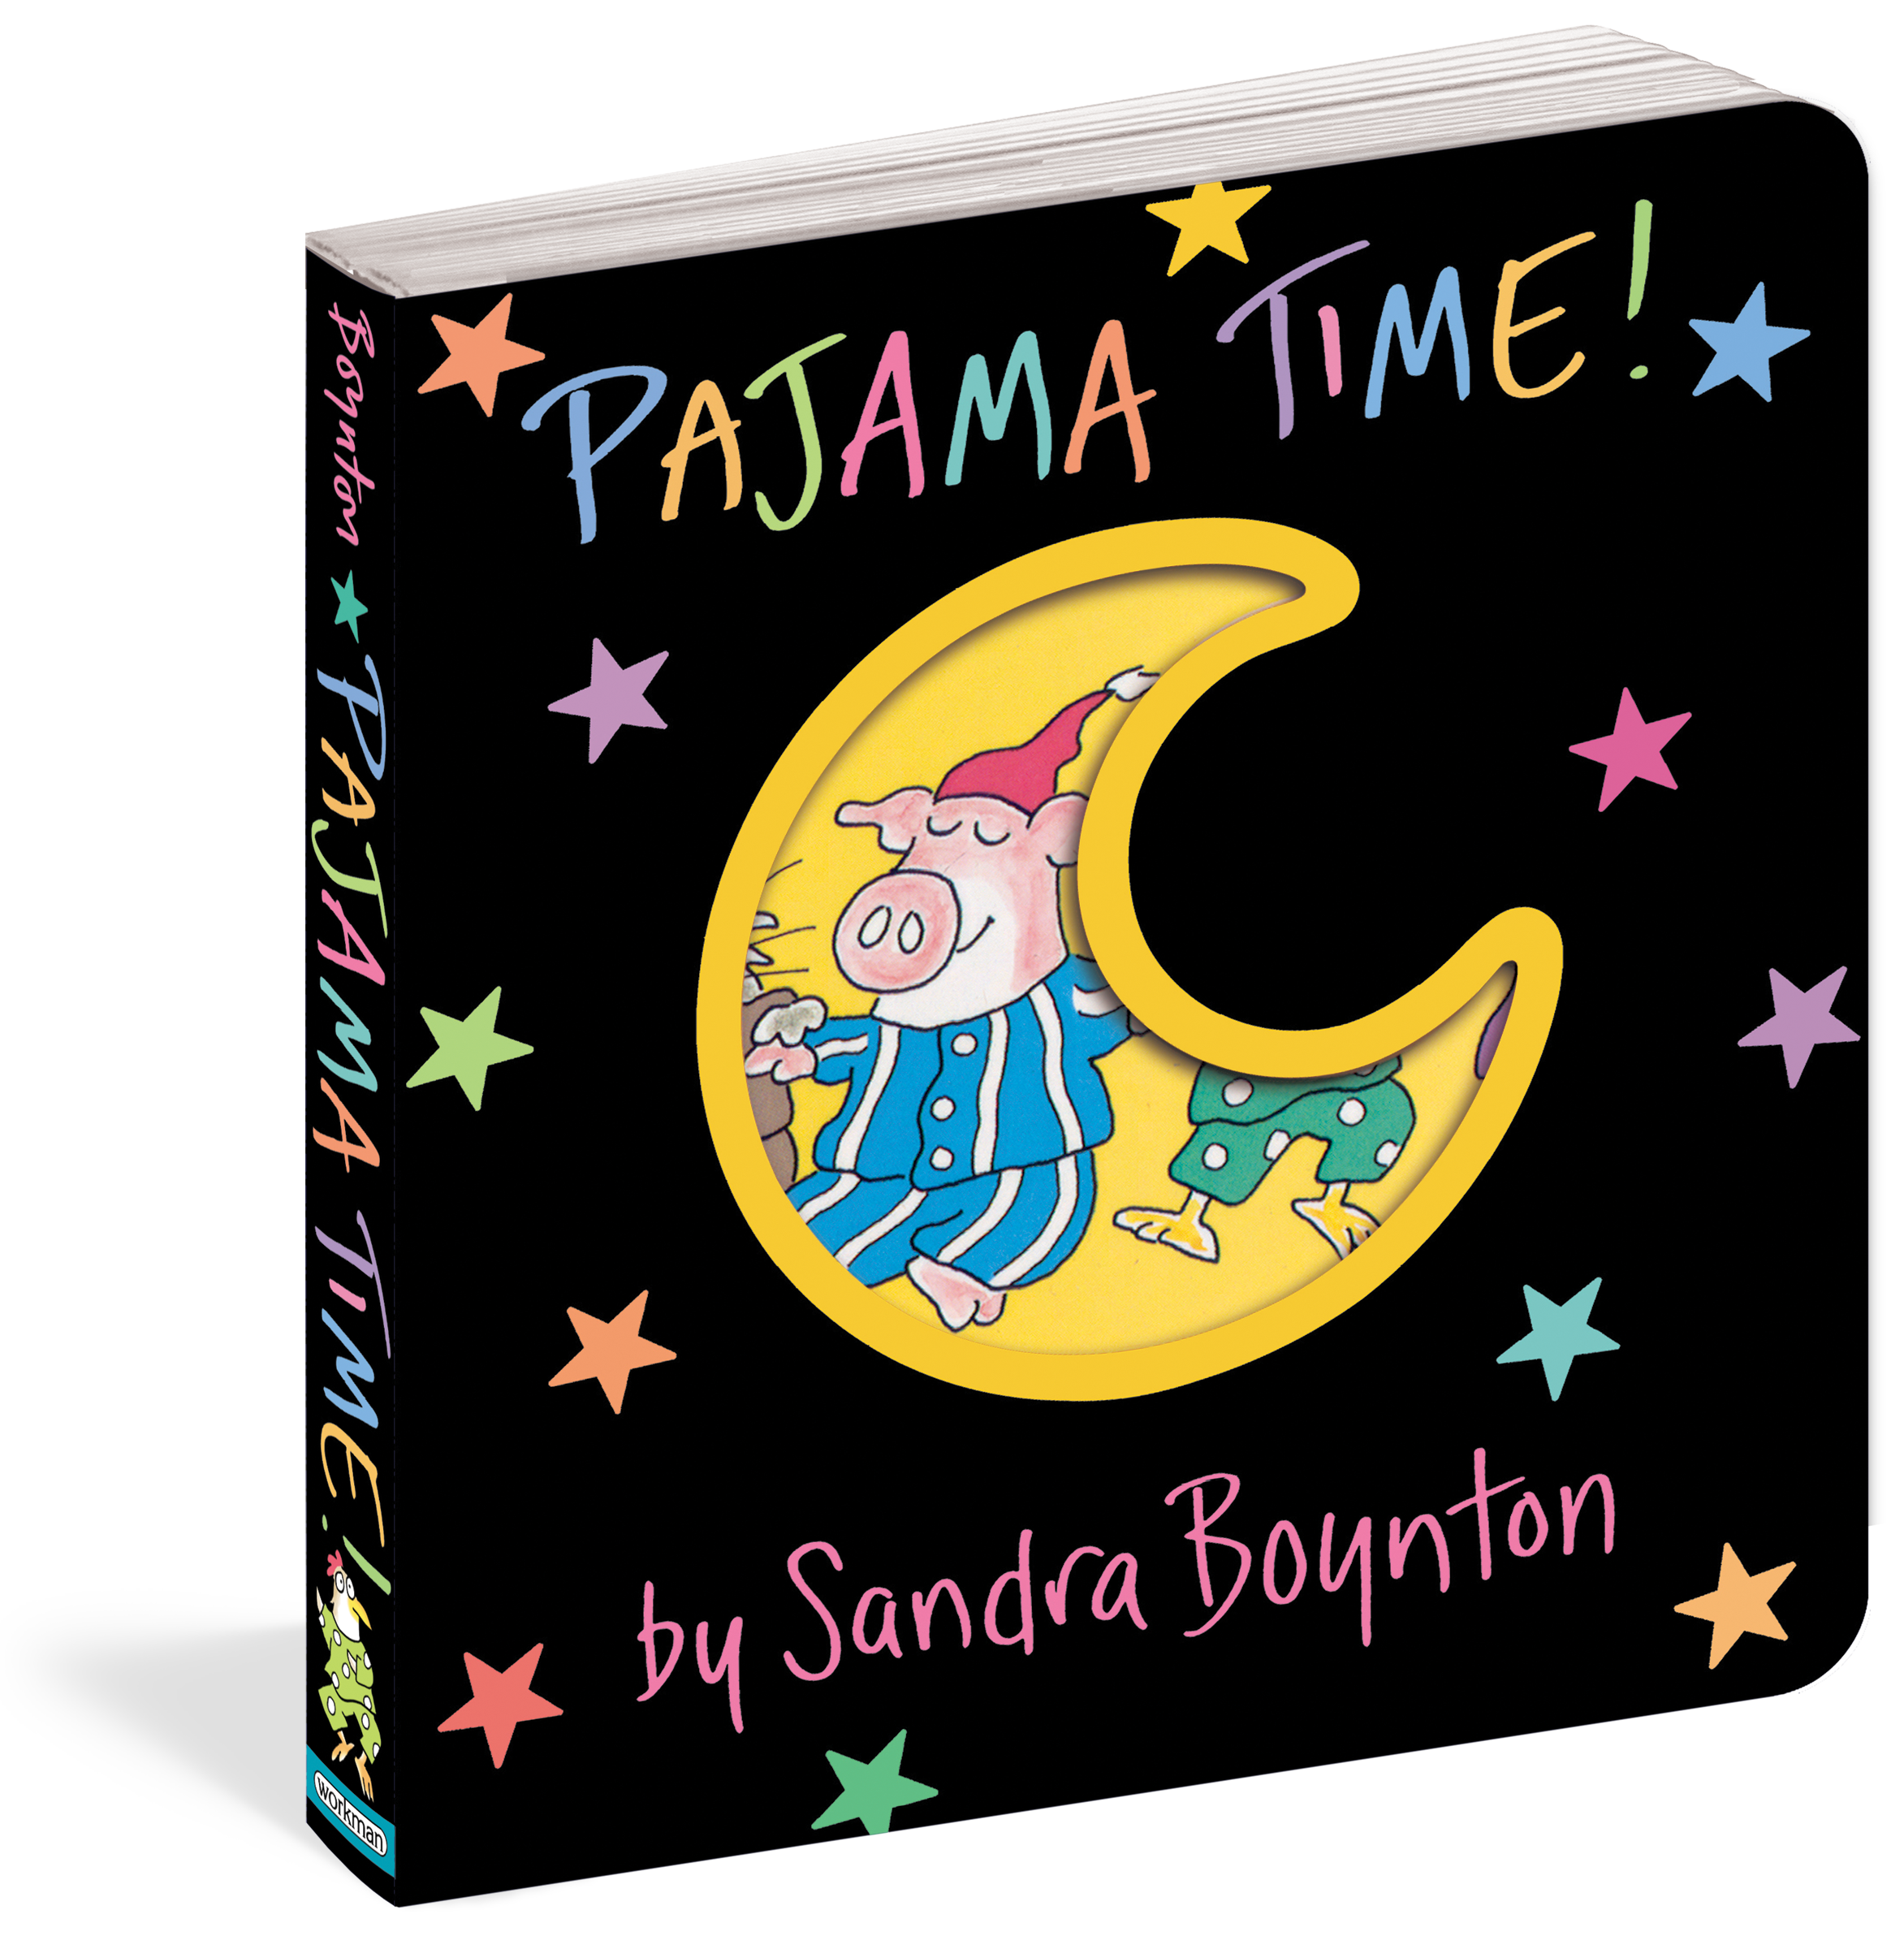 Workman publishing. Pajamas clipart pajama time